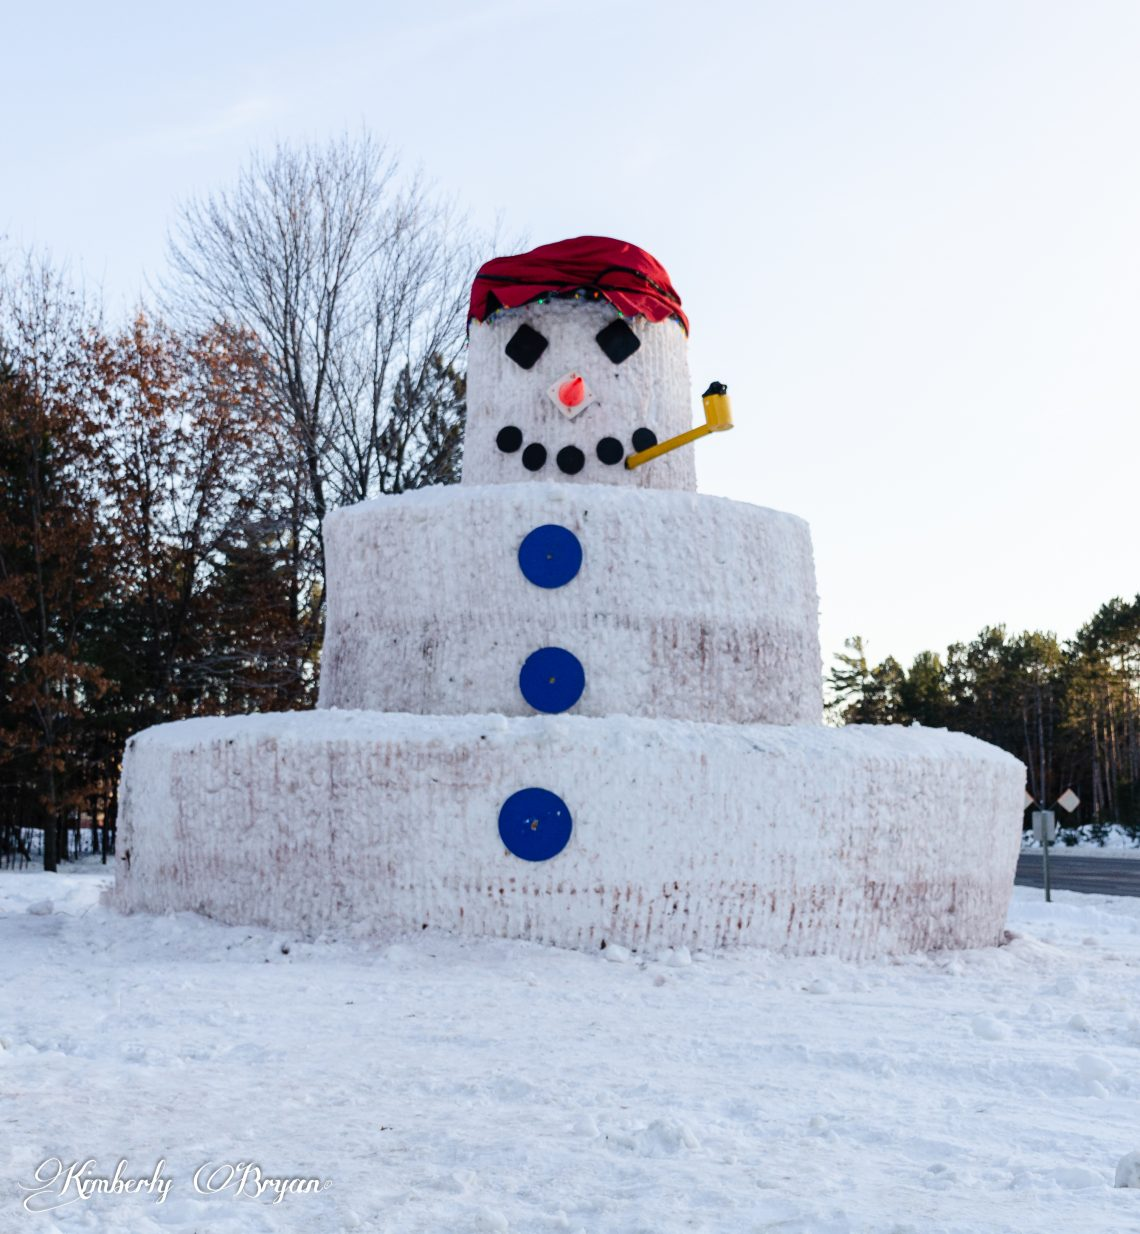 You are looking at Snowmy Kromer a 30 foot high snowman in Minocqua, Wi.